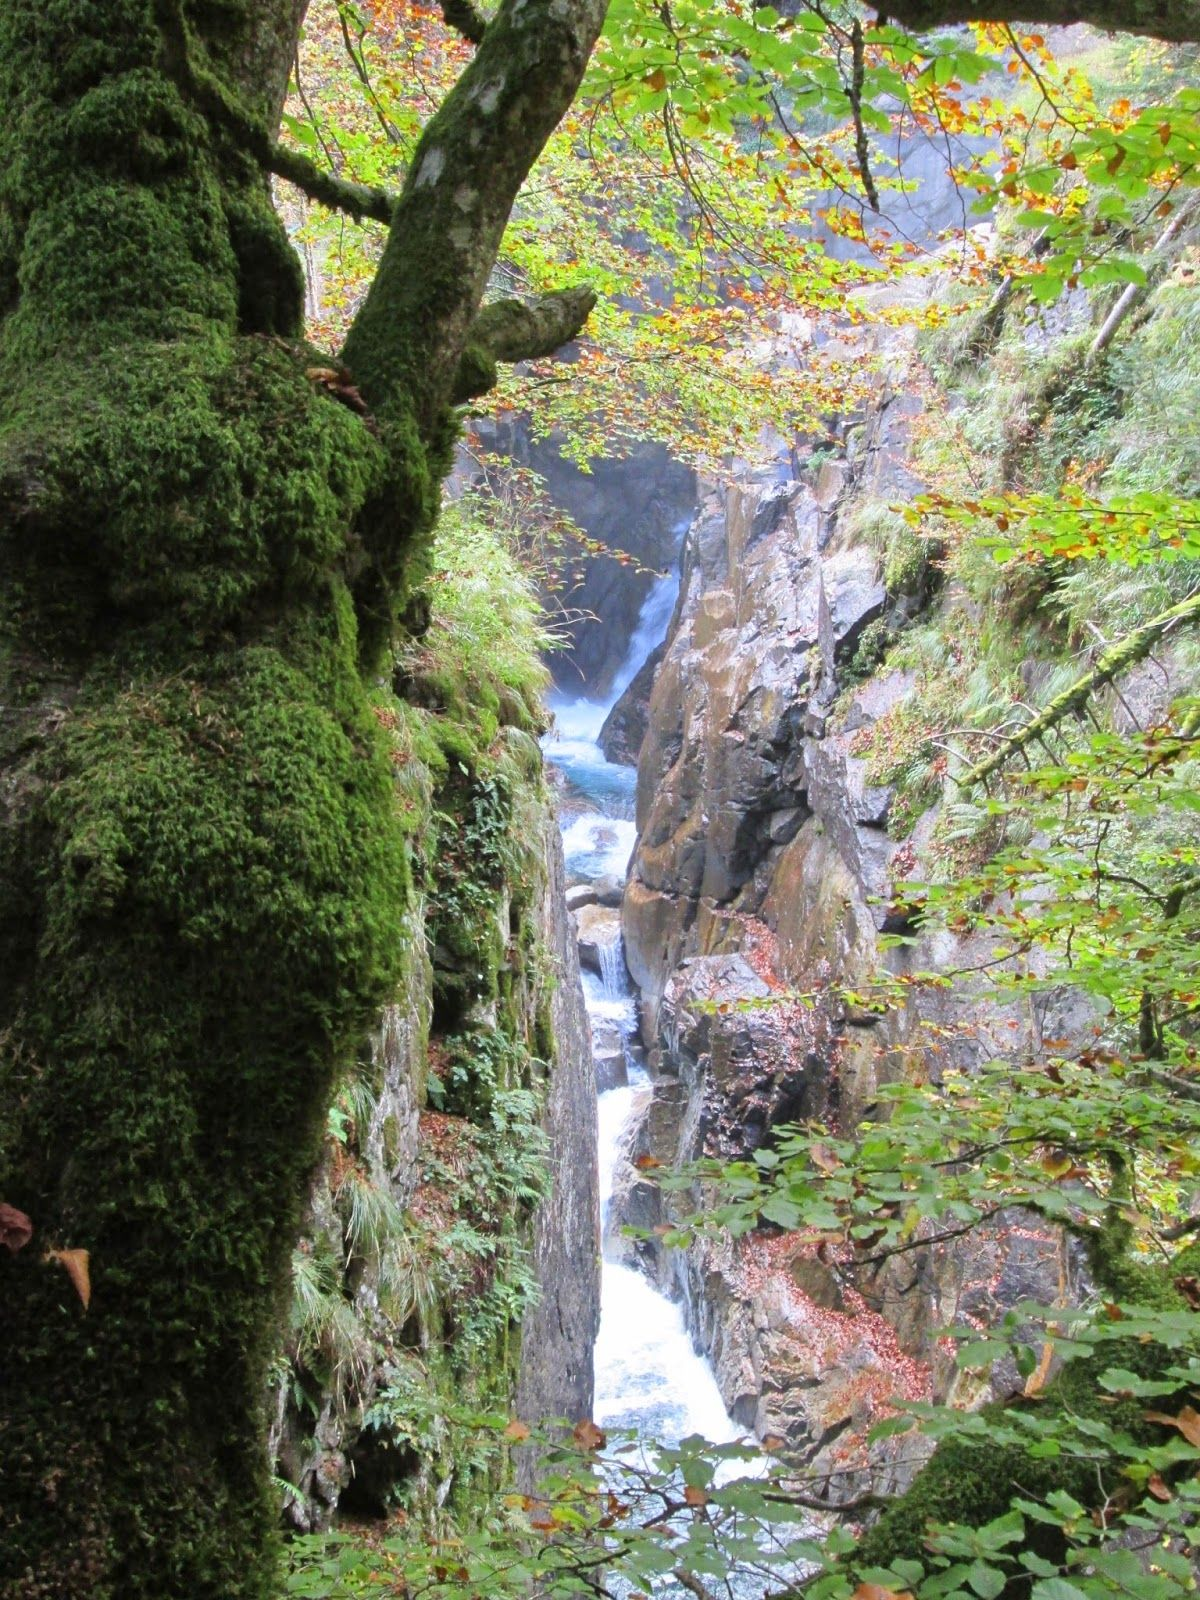 Following Waterfalls to Lac de Gaube from Cauterets - Hiking in the French Pyrenees - Waterfalls